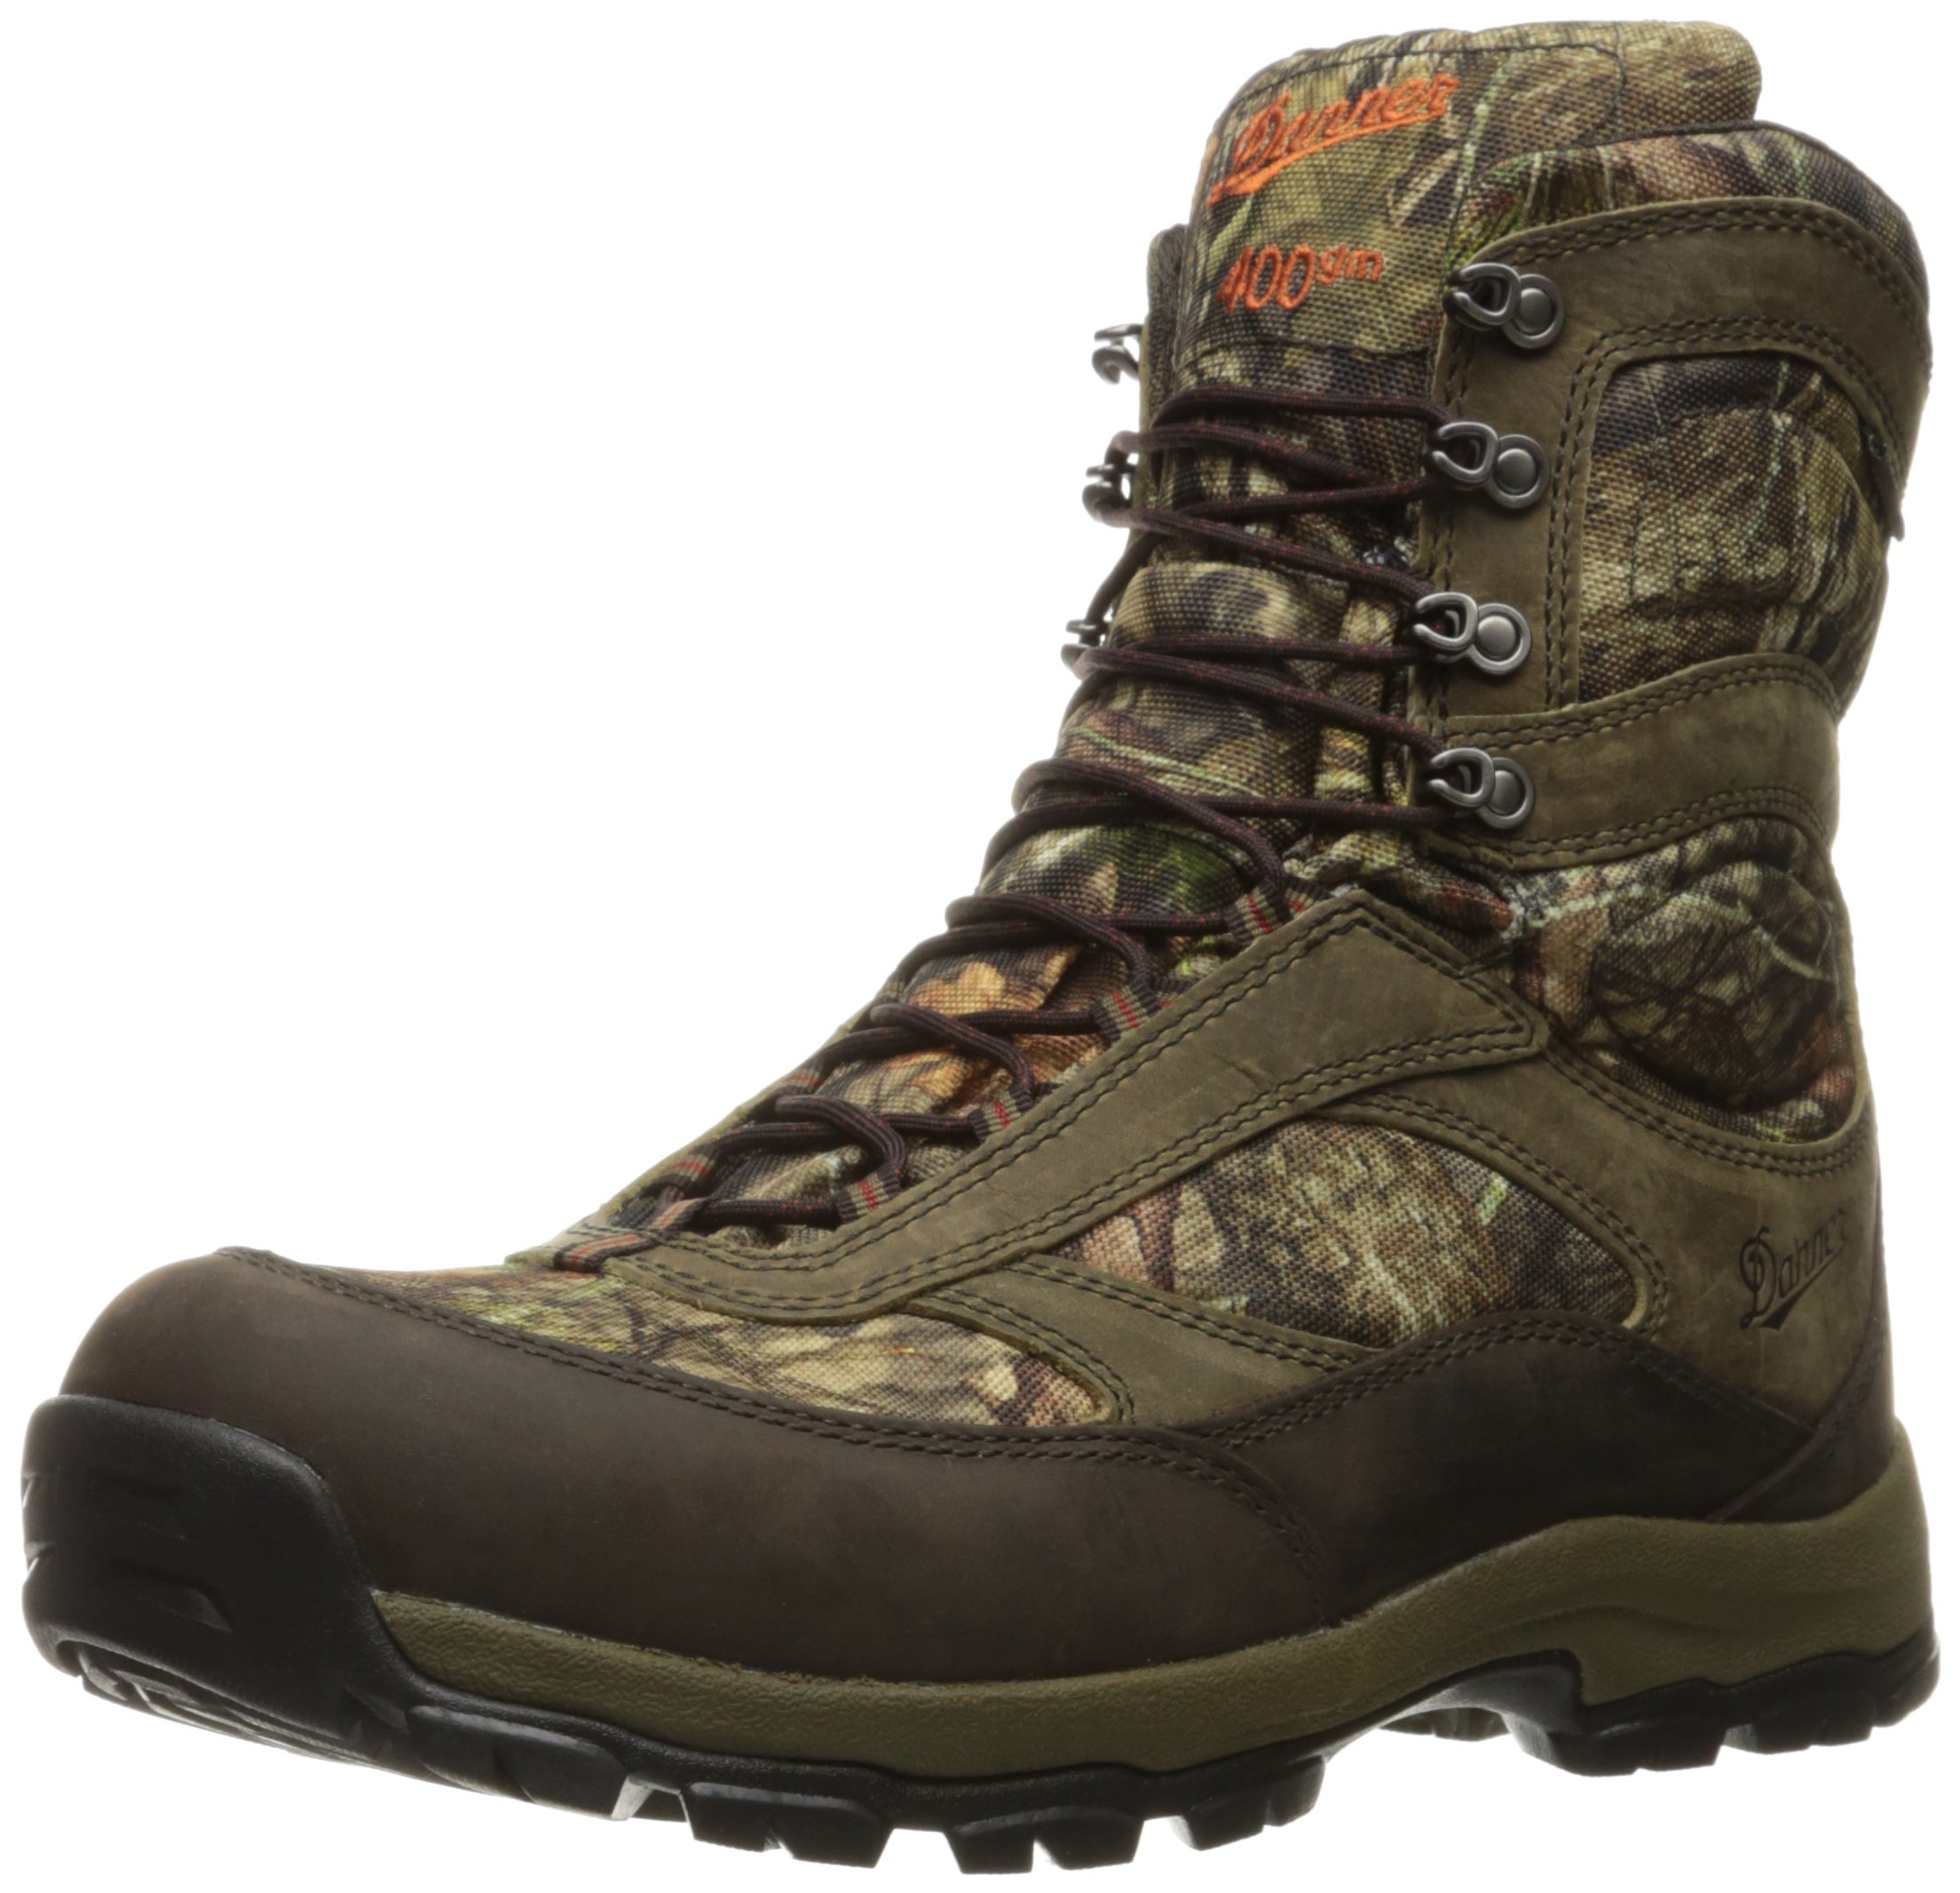 Danner Men's High Ground 8'' Hunting Shoes, Mossy Oak Break up Country, 8.5 2E US by Danner